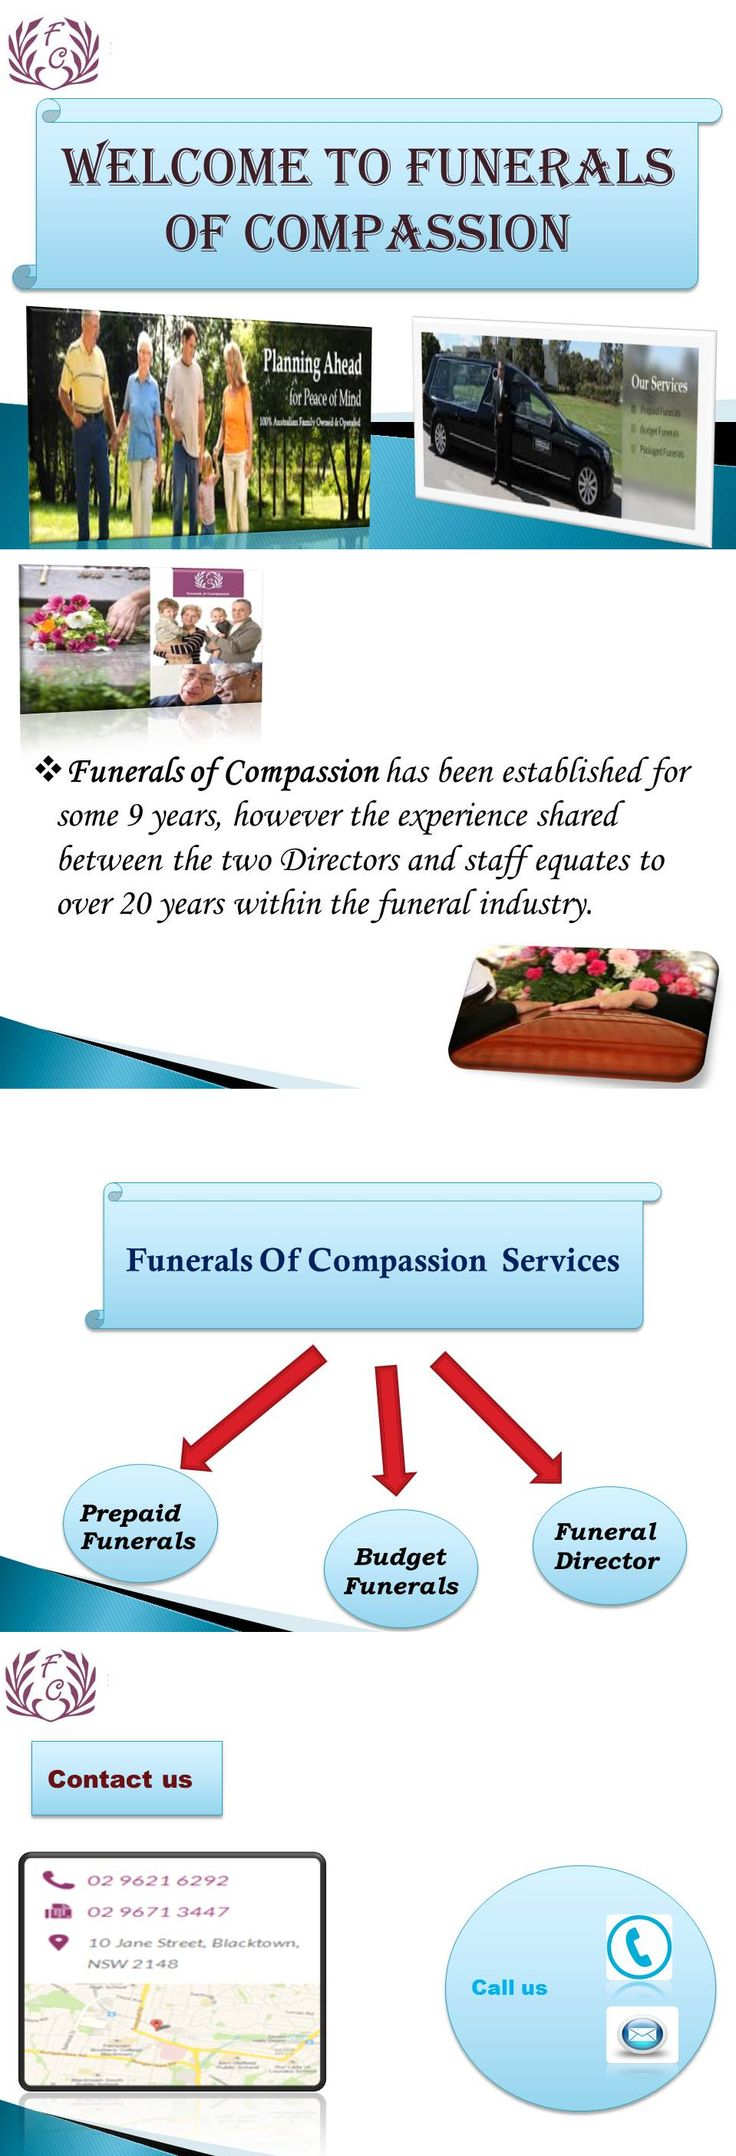 Funerals of Compassion organize funeral Home service in Sydney.